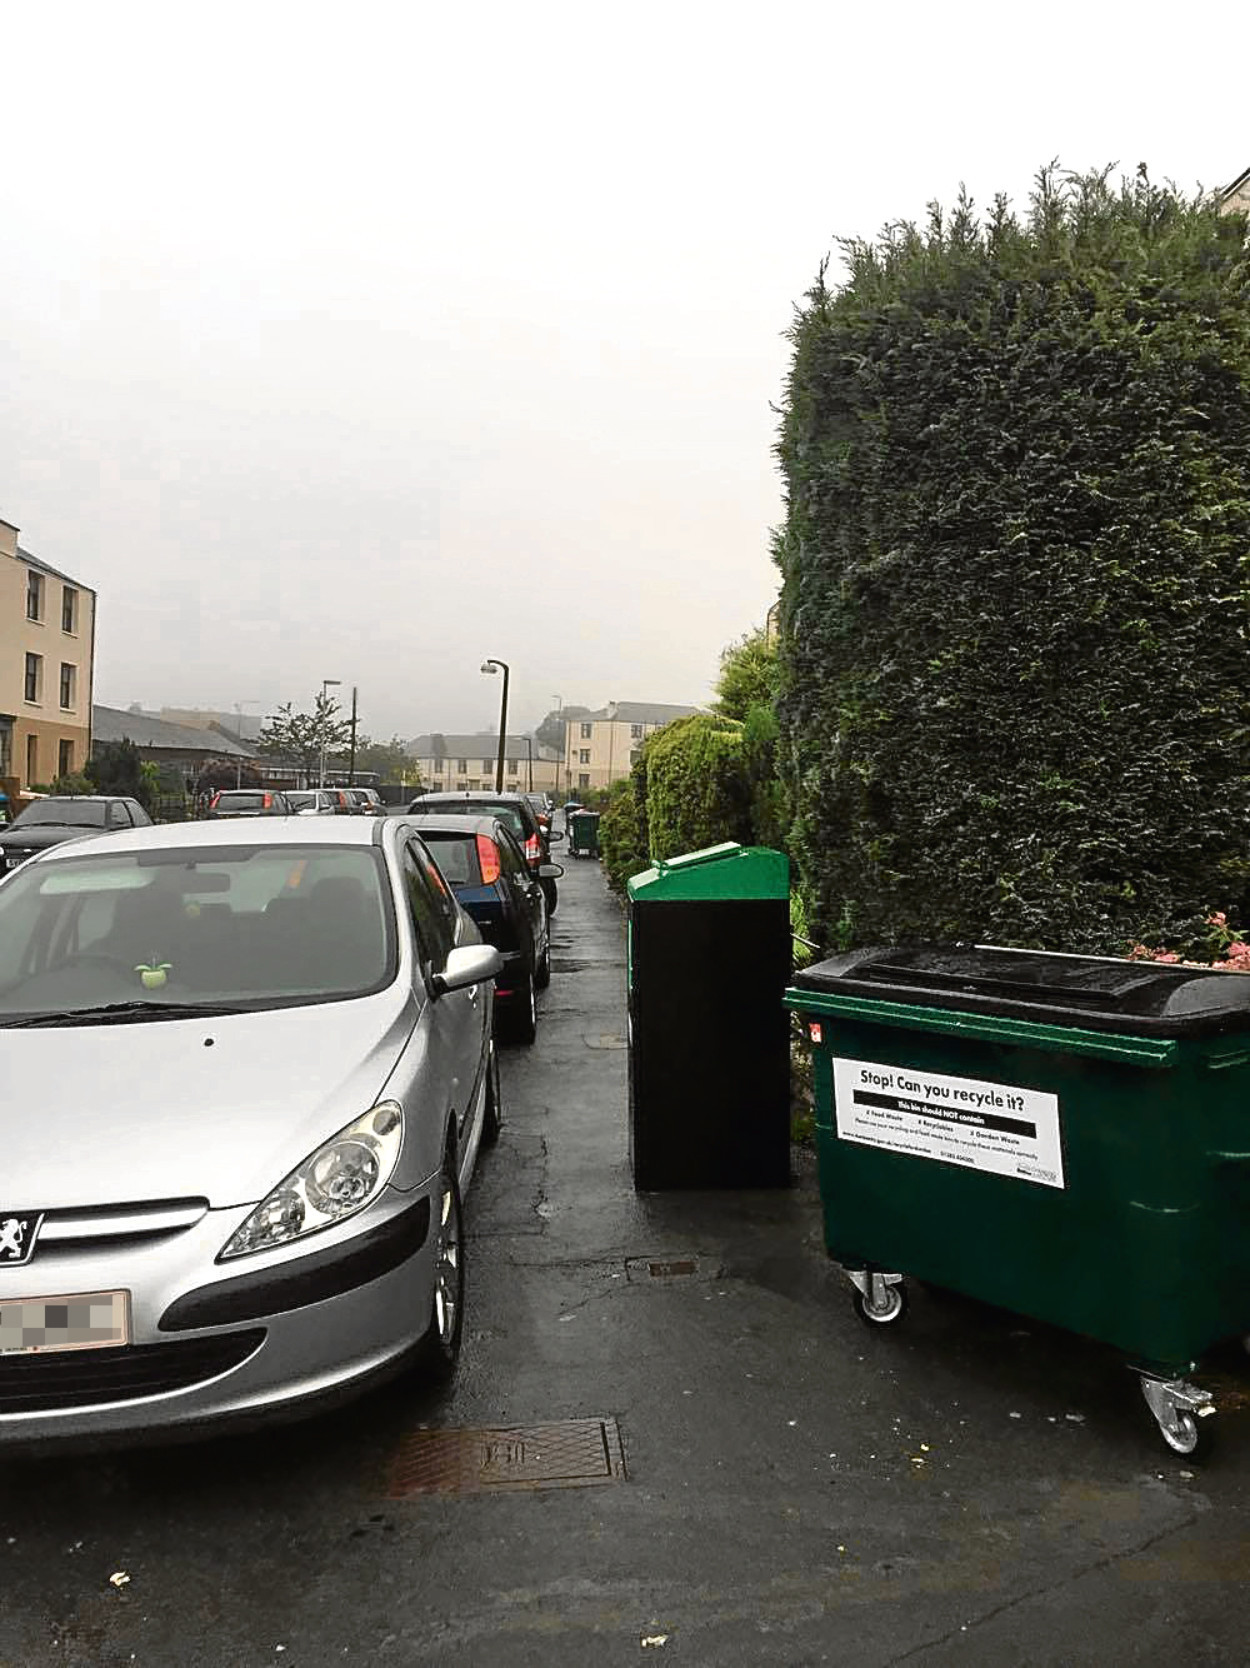 Bad parking on Marryat Street in August 2017